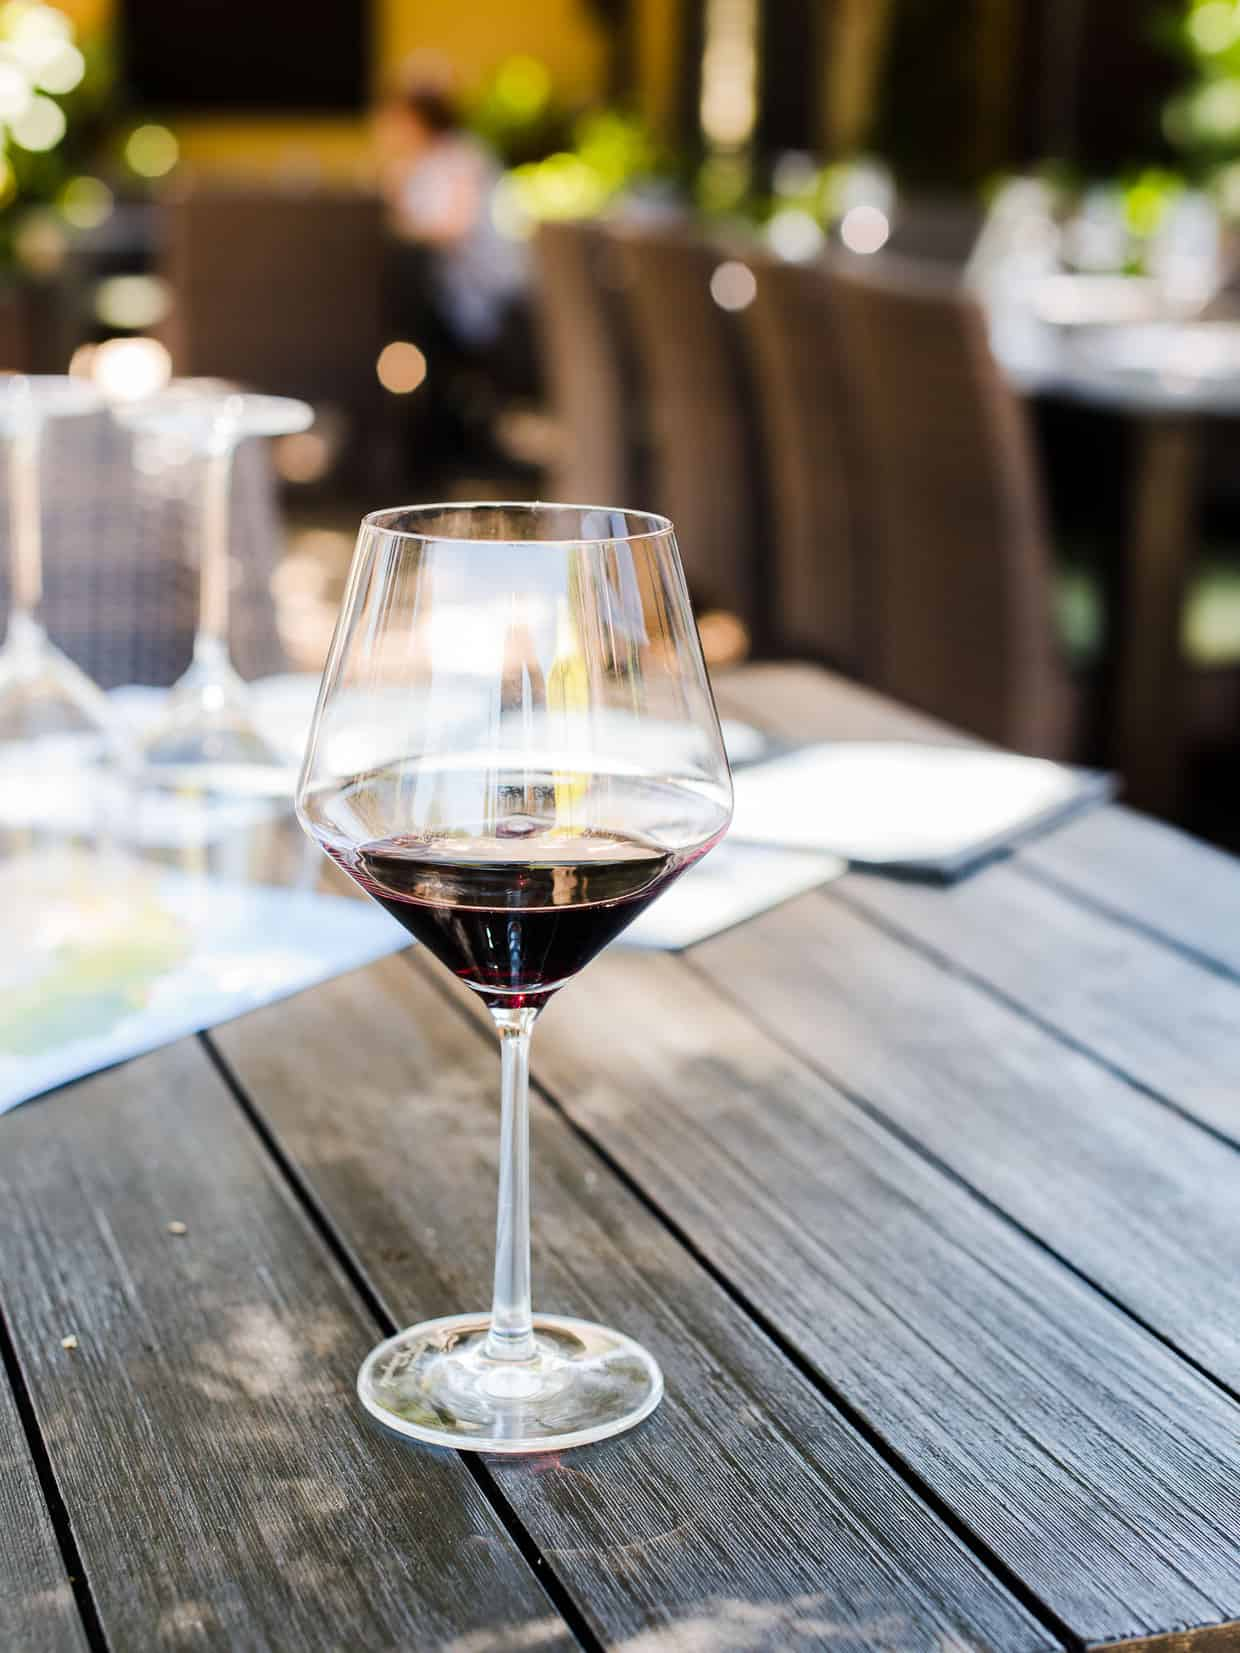 A glass of red wine with tables and chairs in the background.